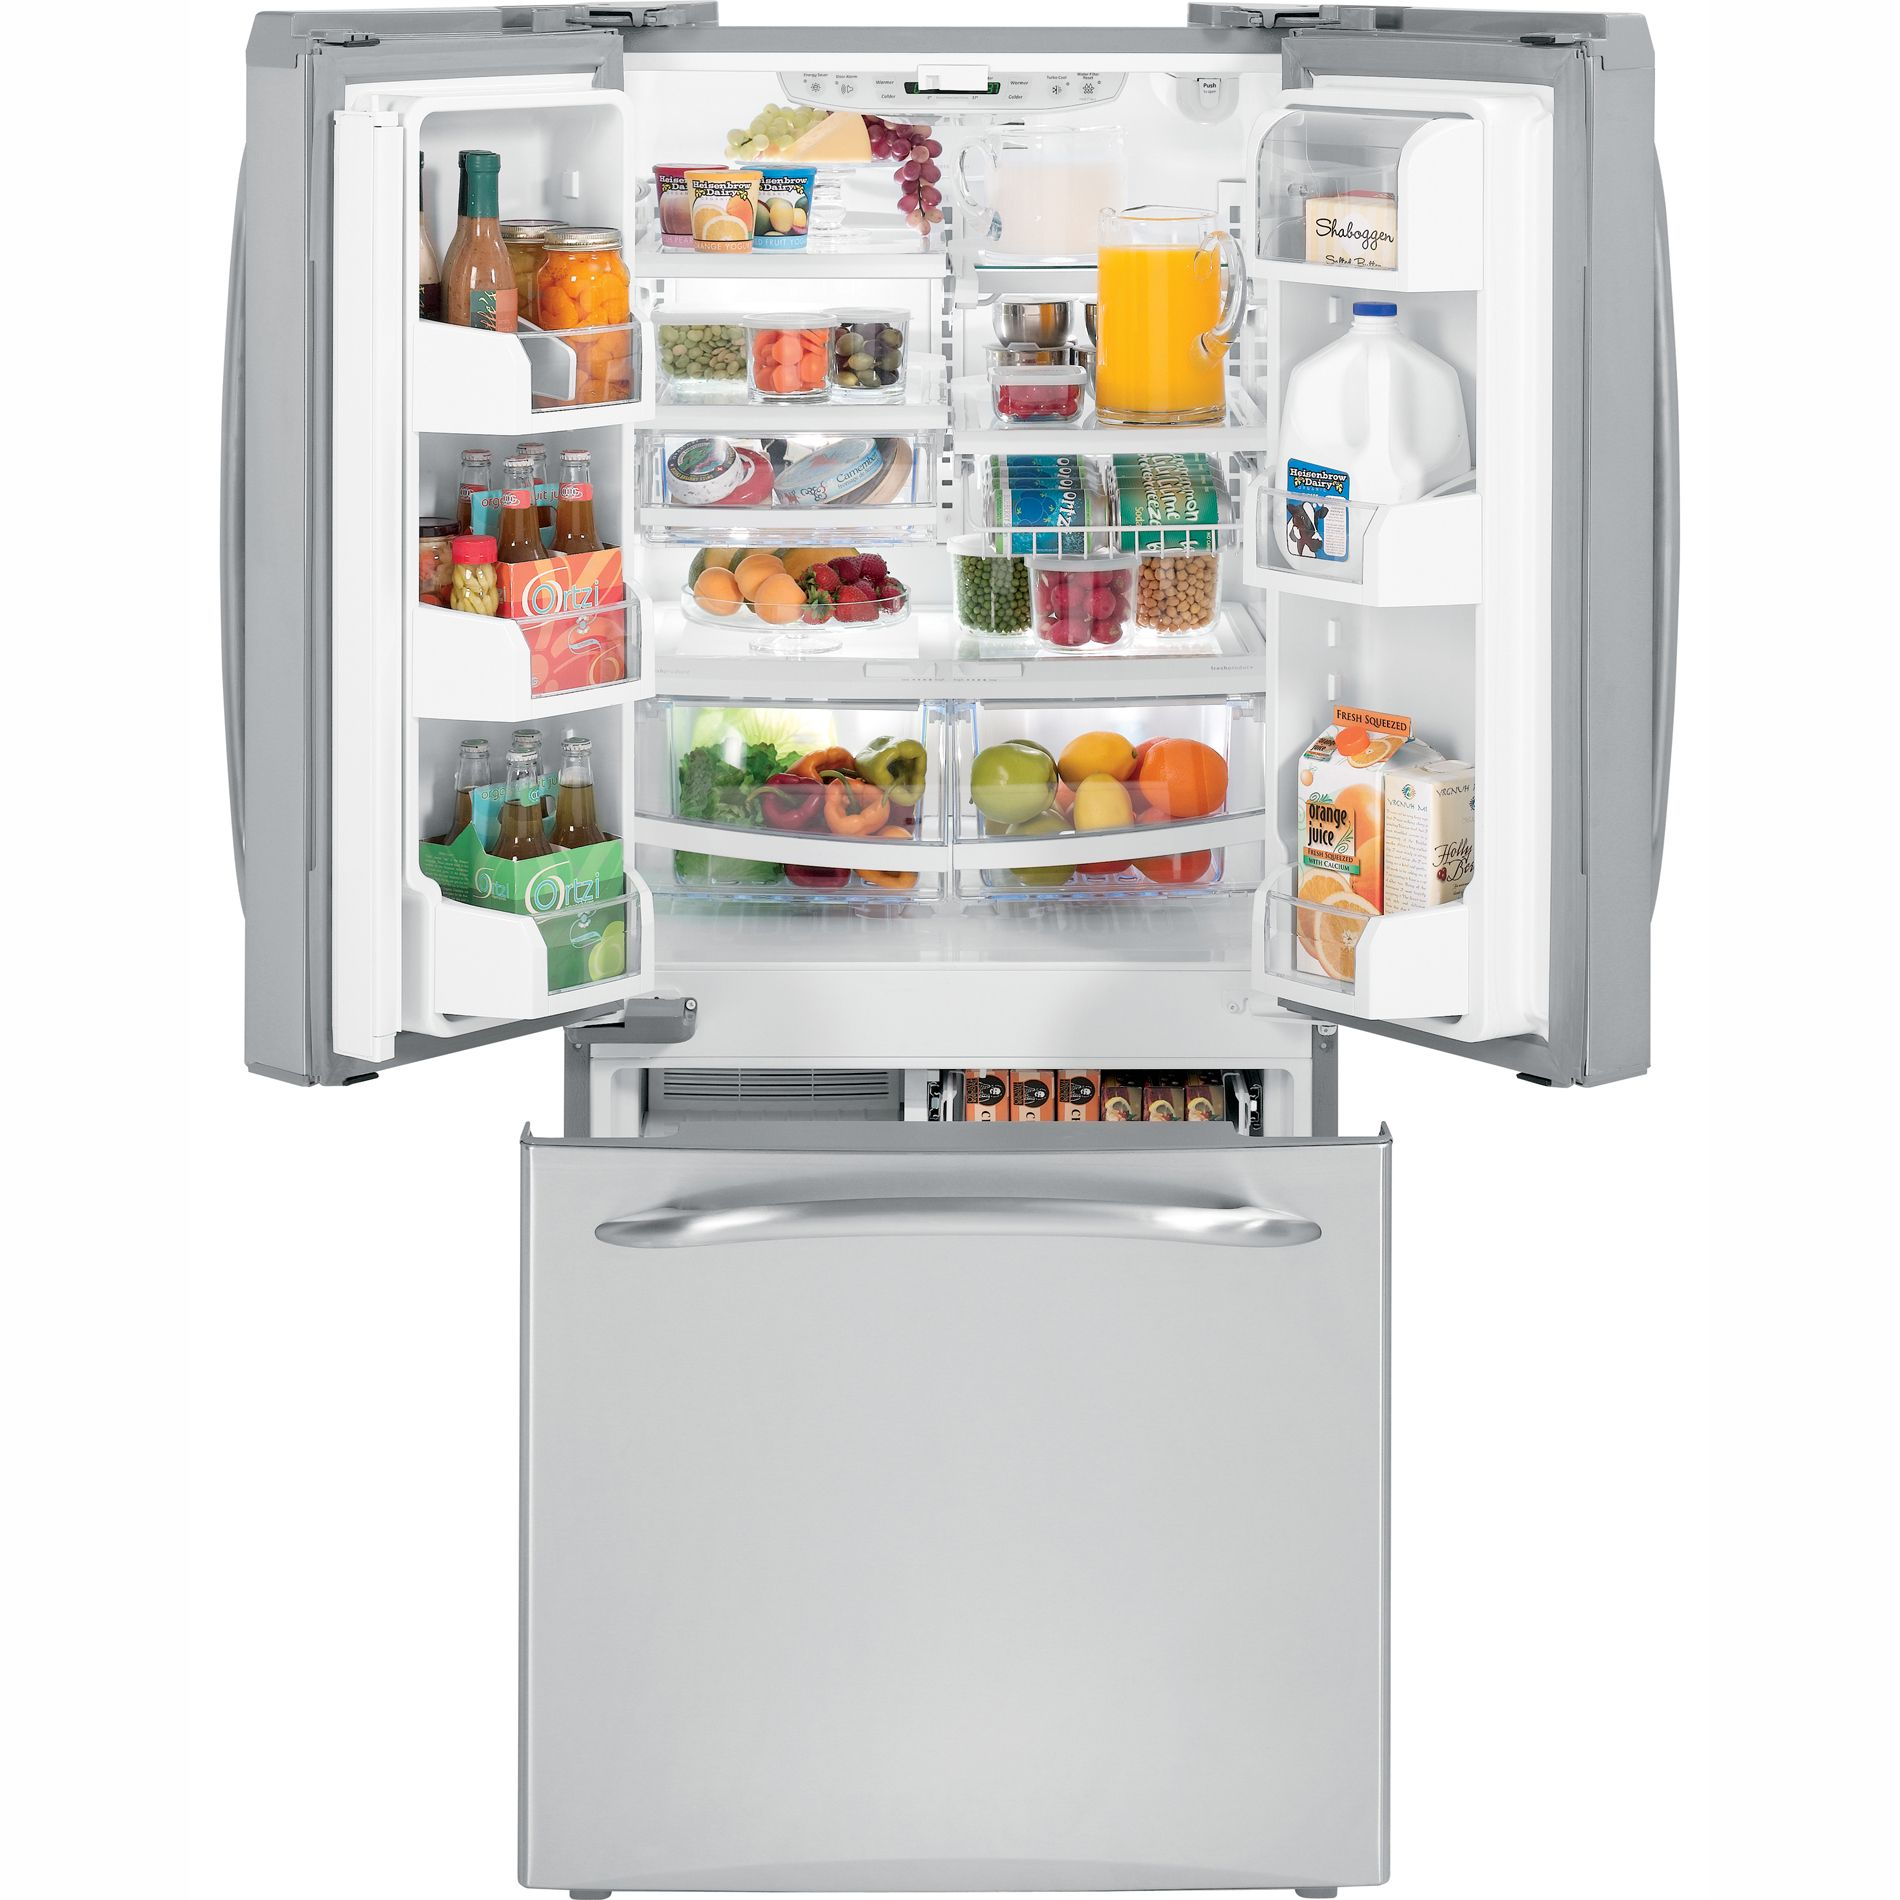 GE 19.5 cu. ft. French Door Bottom-Freezer Refrigerator